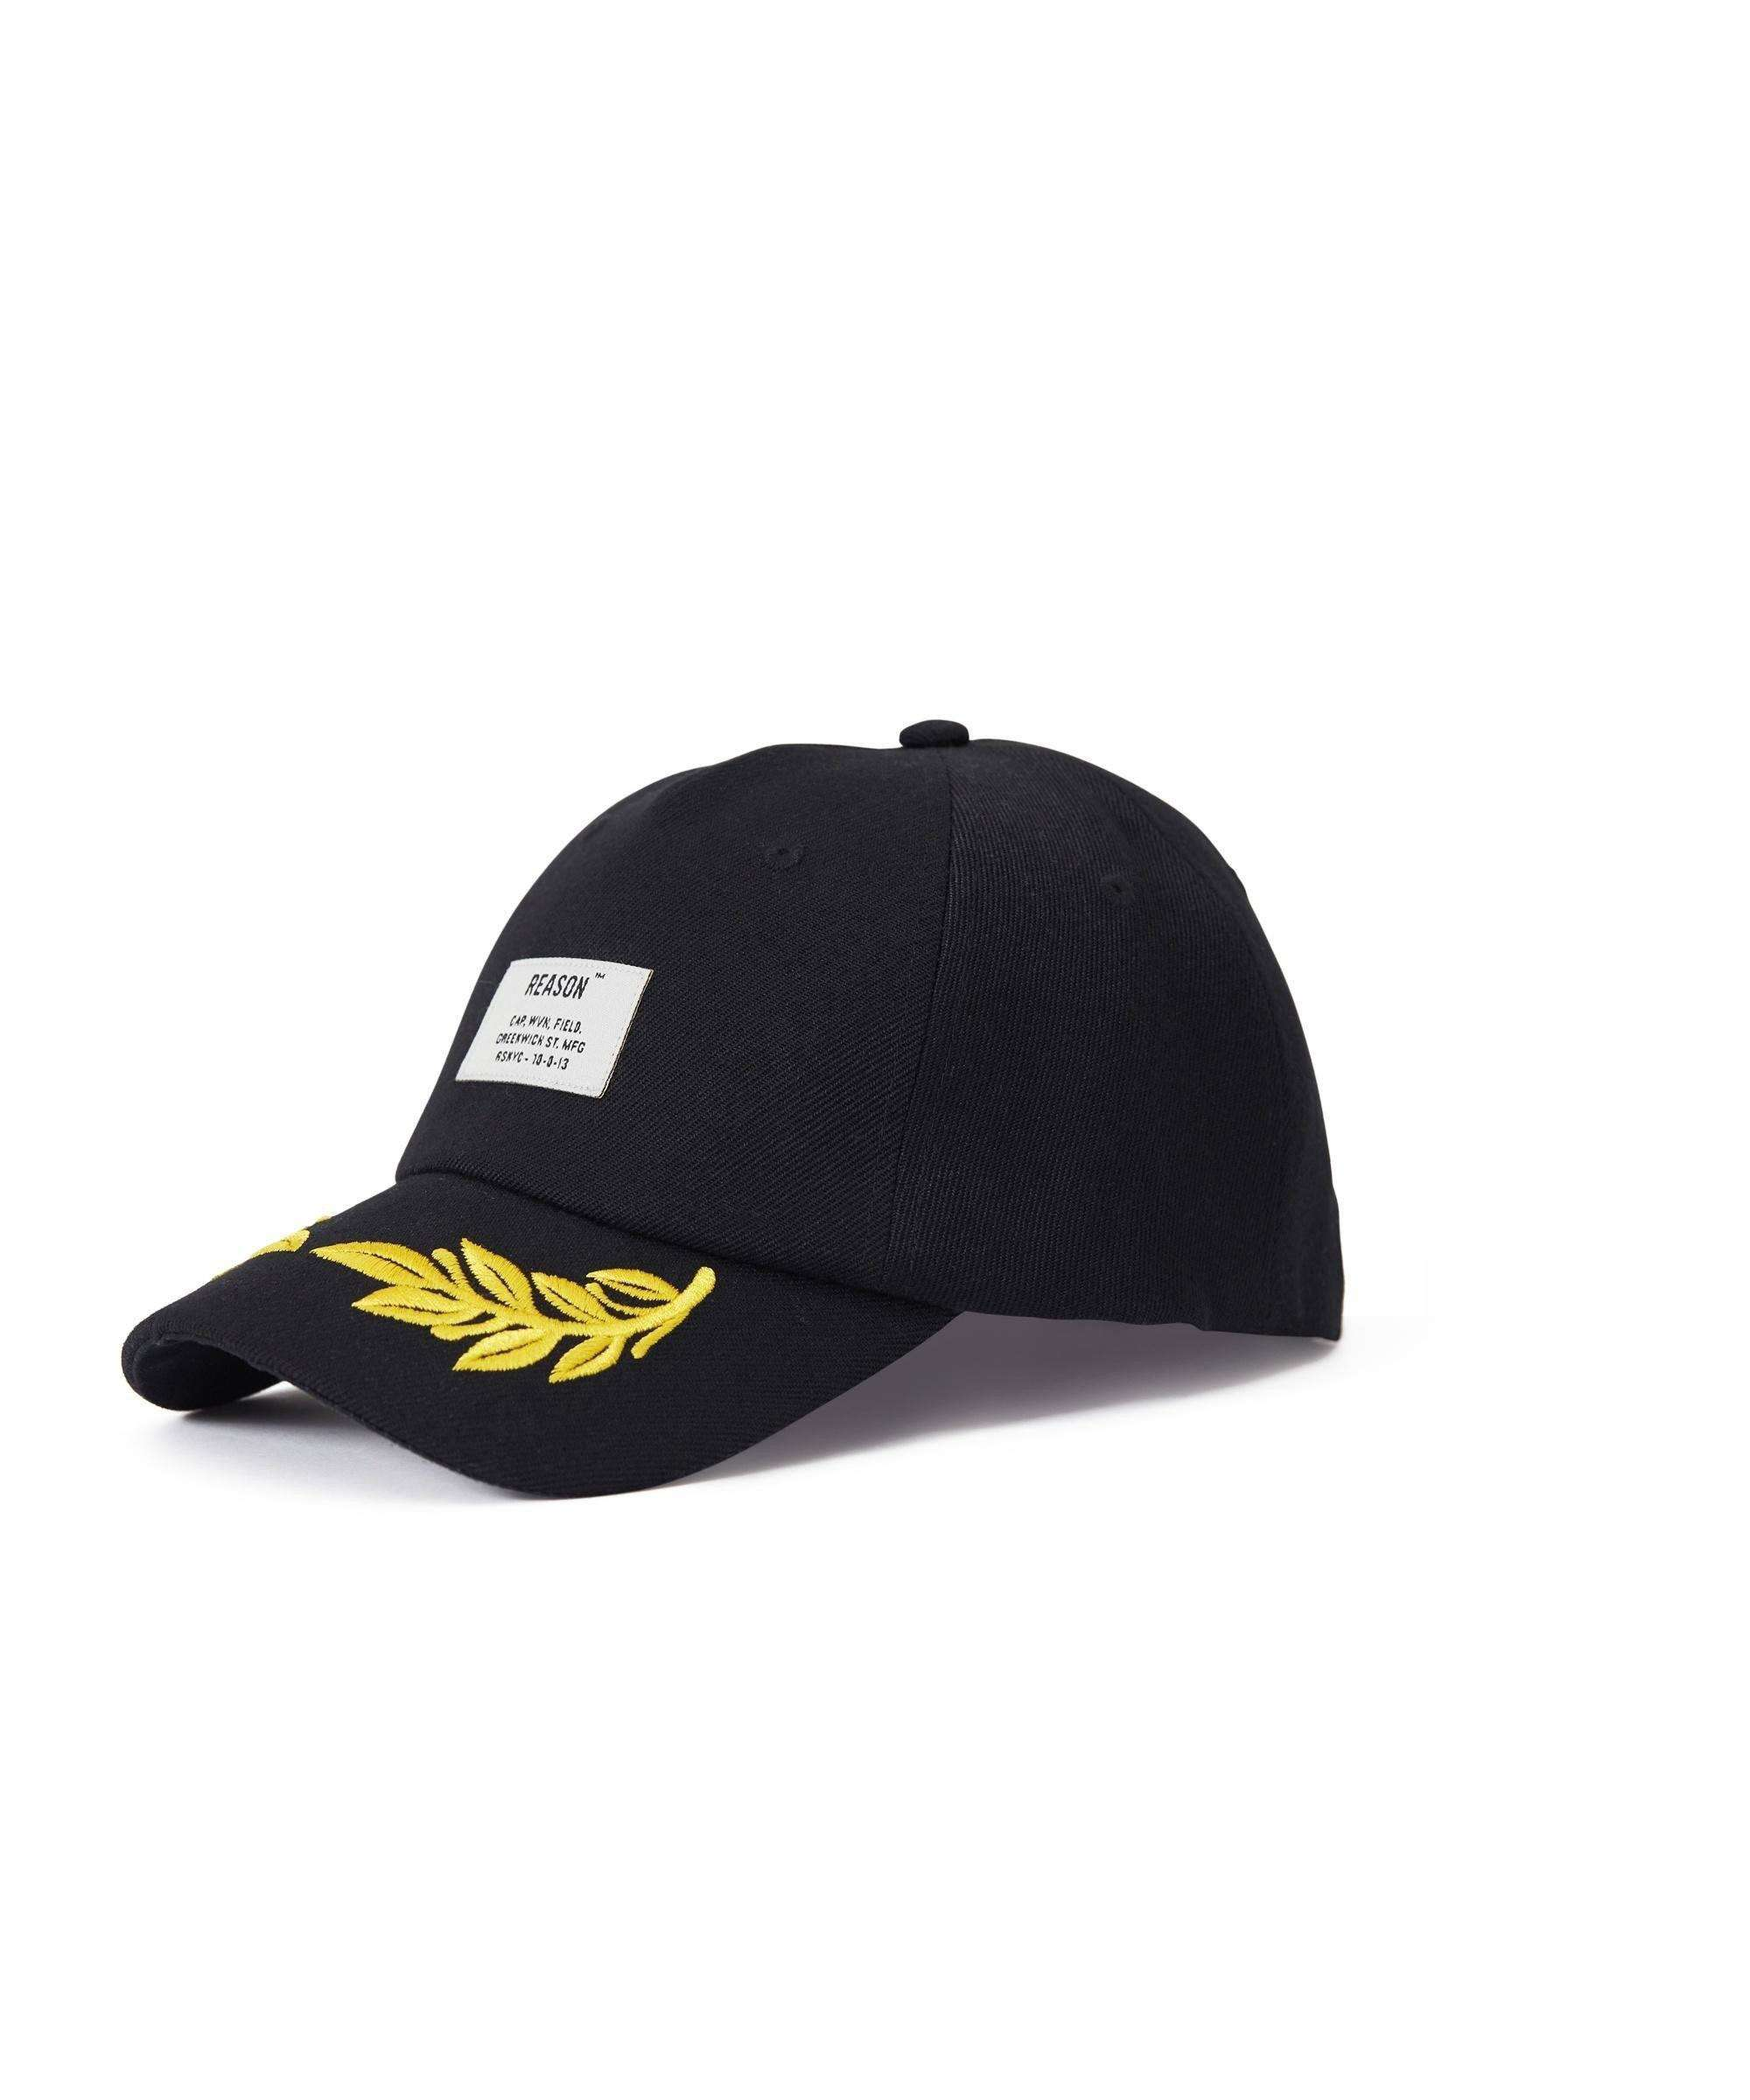 CAPTAINS HAT - Reason Clothing